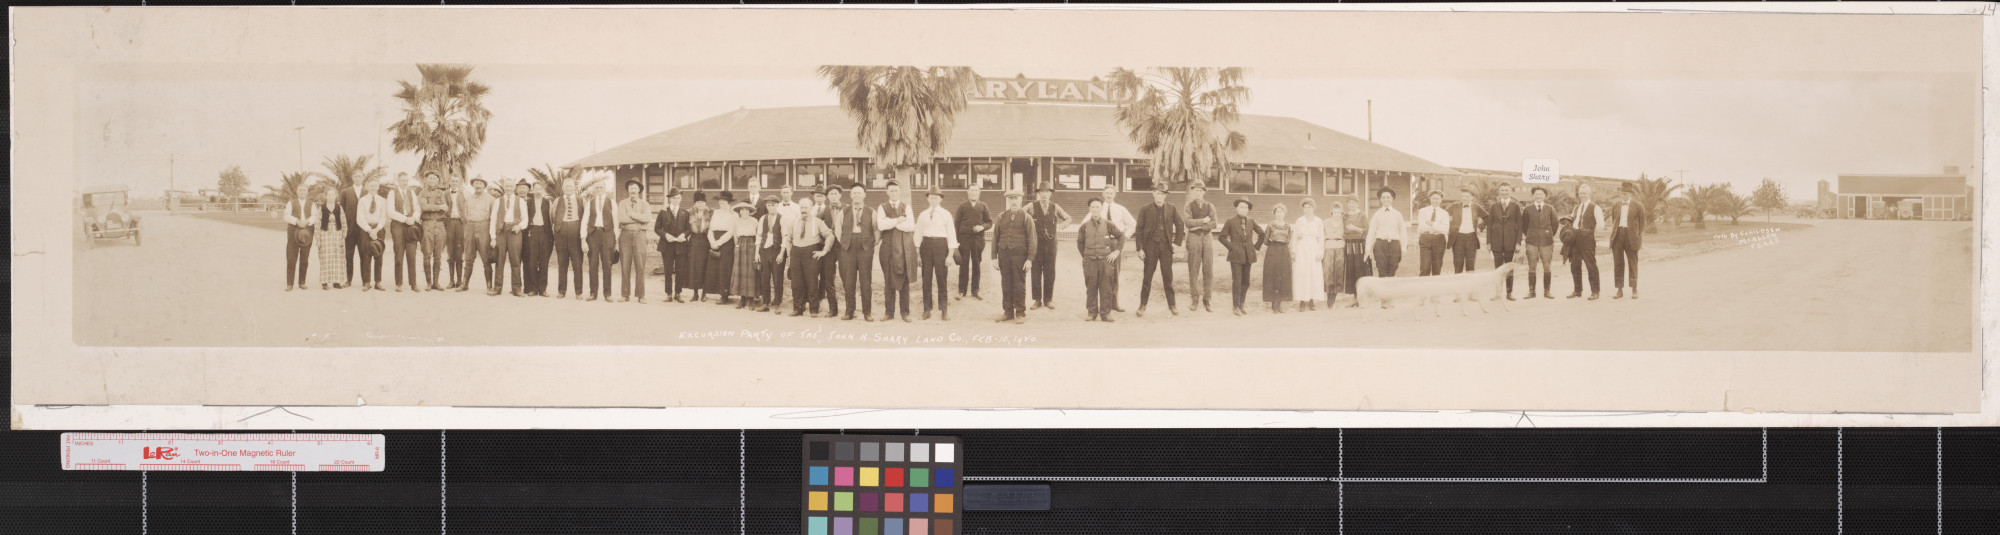 Excursion party of the John H. Shary Land Company                                                                                                      [Sequence #]: 1 of 1